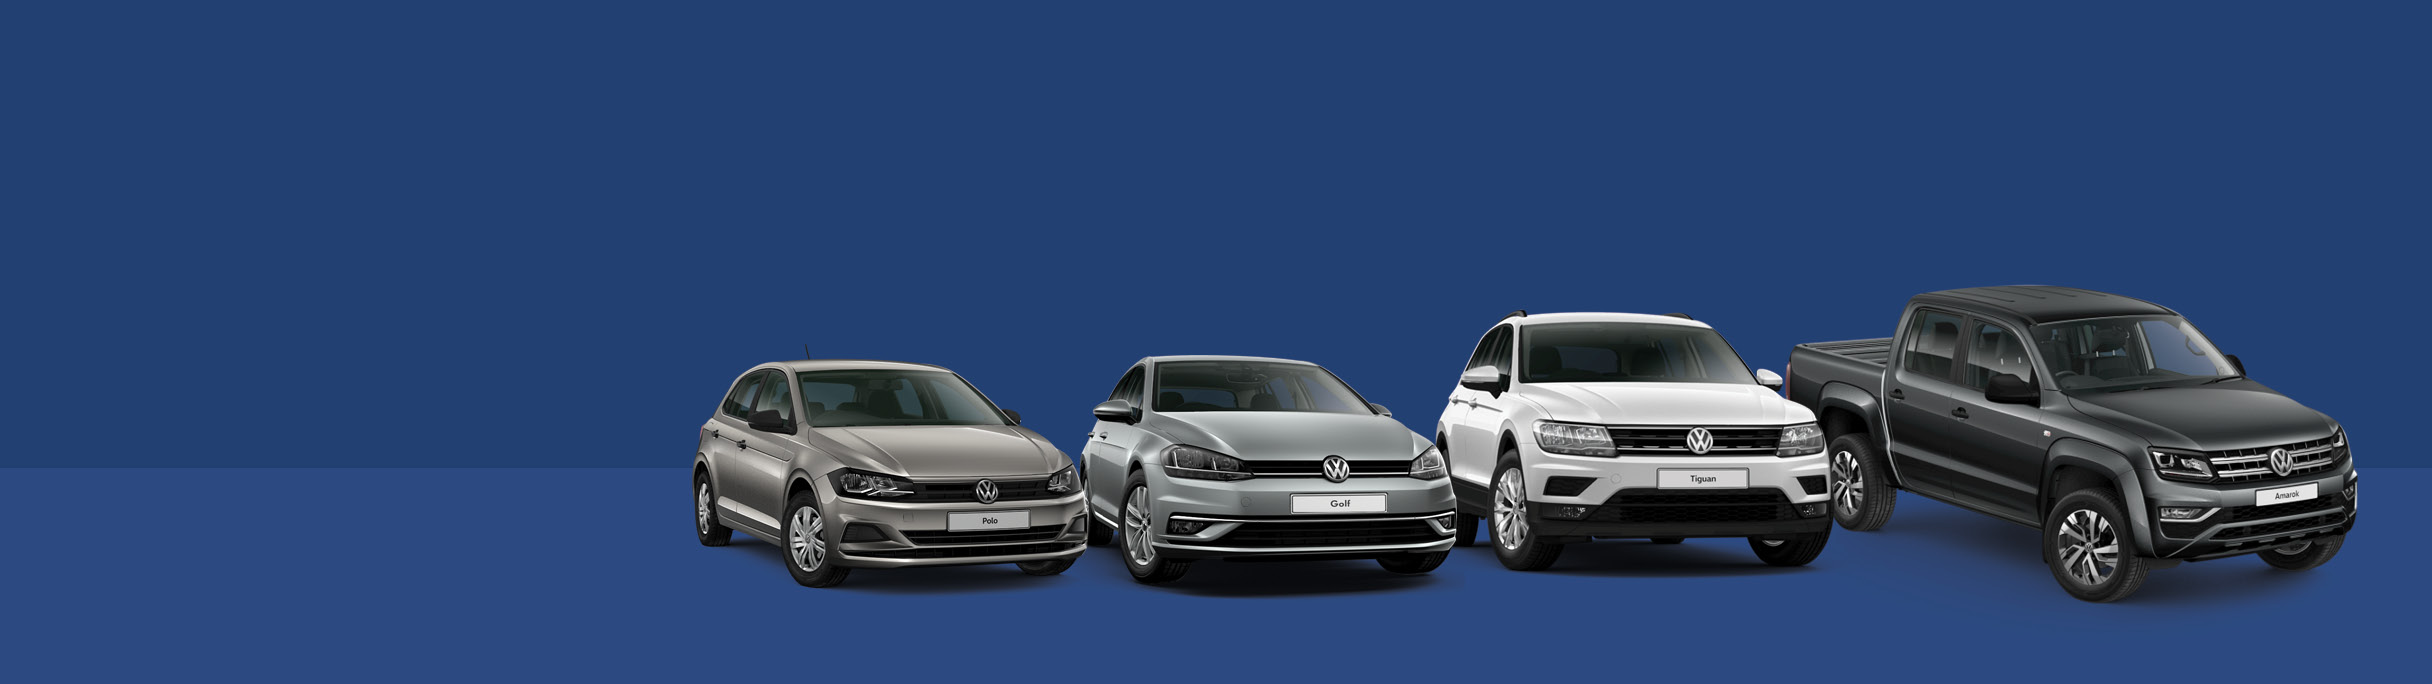 Barons Durban dealership Volkswagen Specials